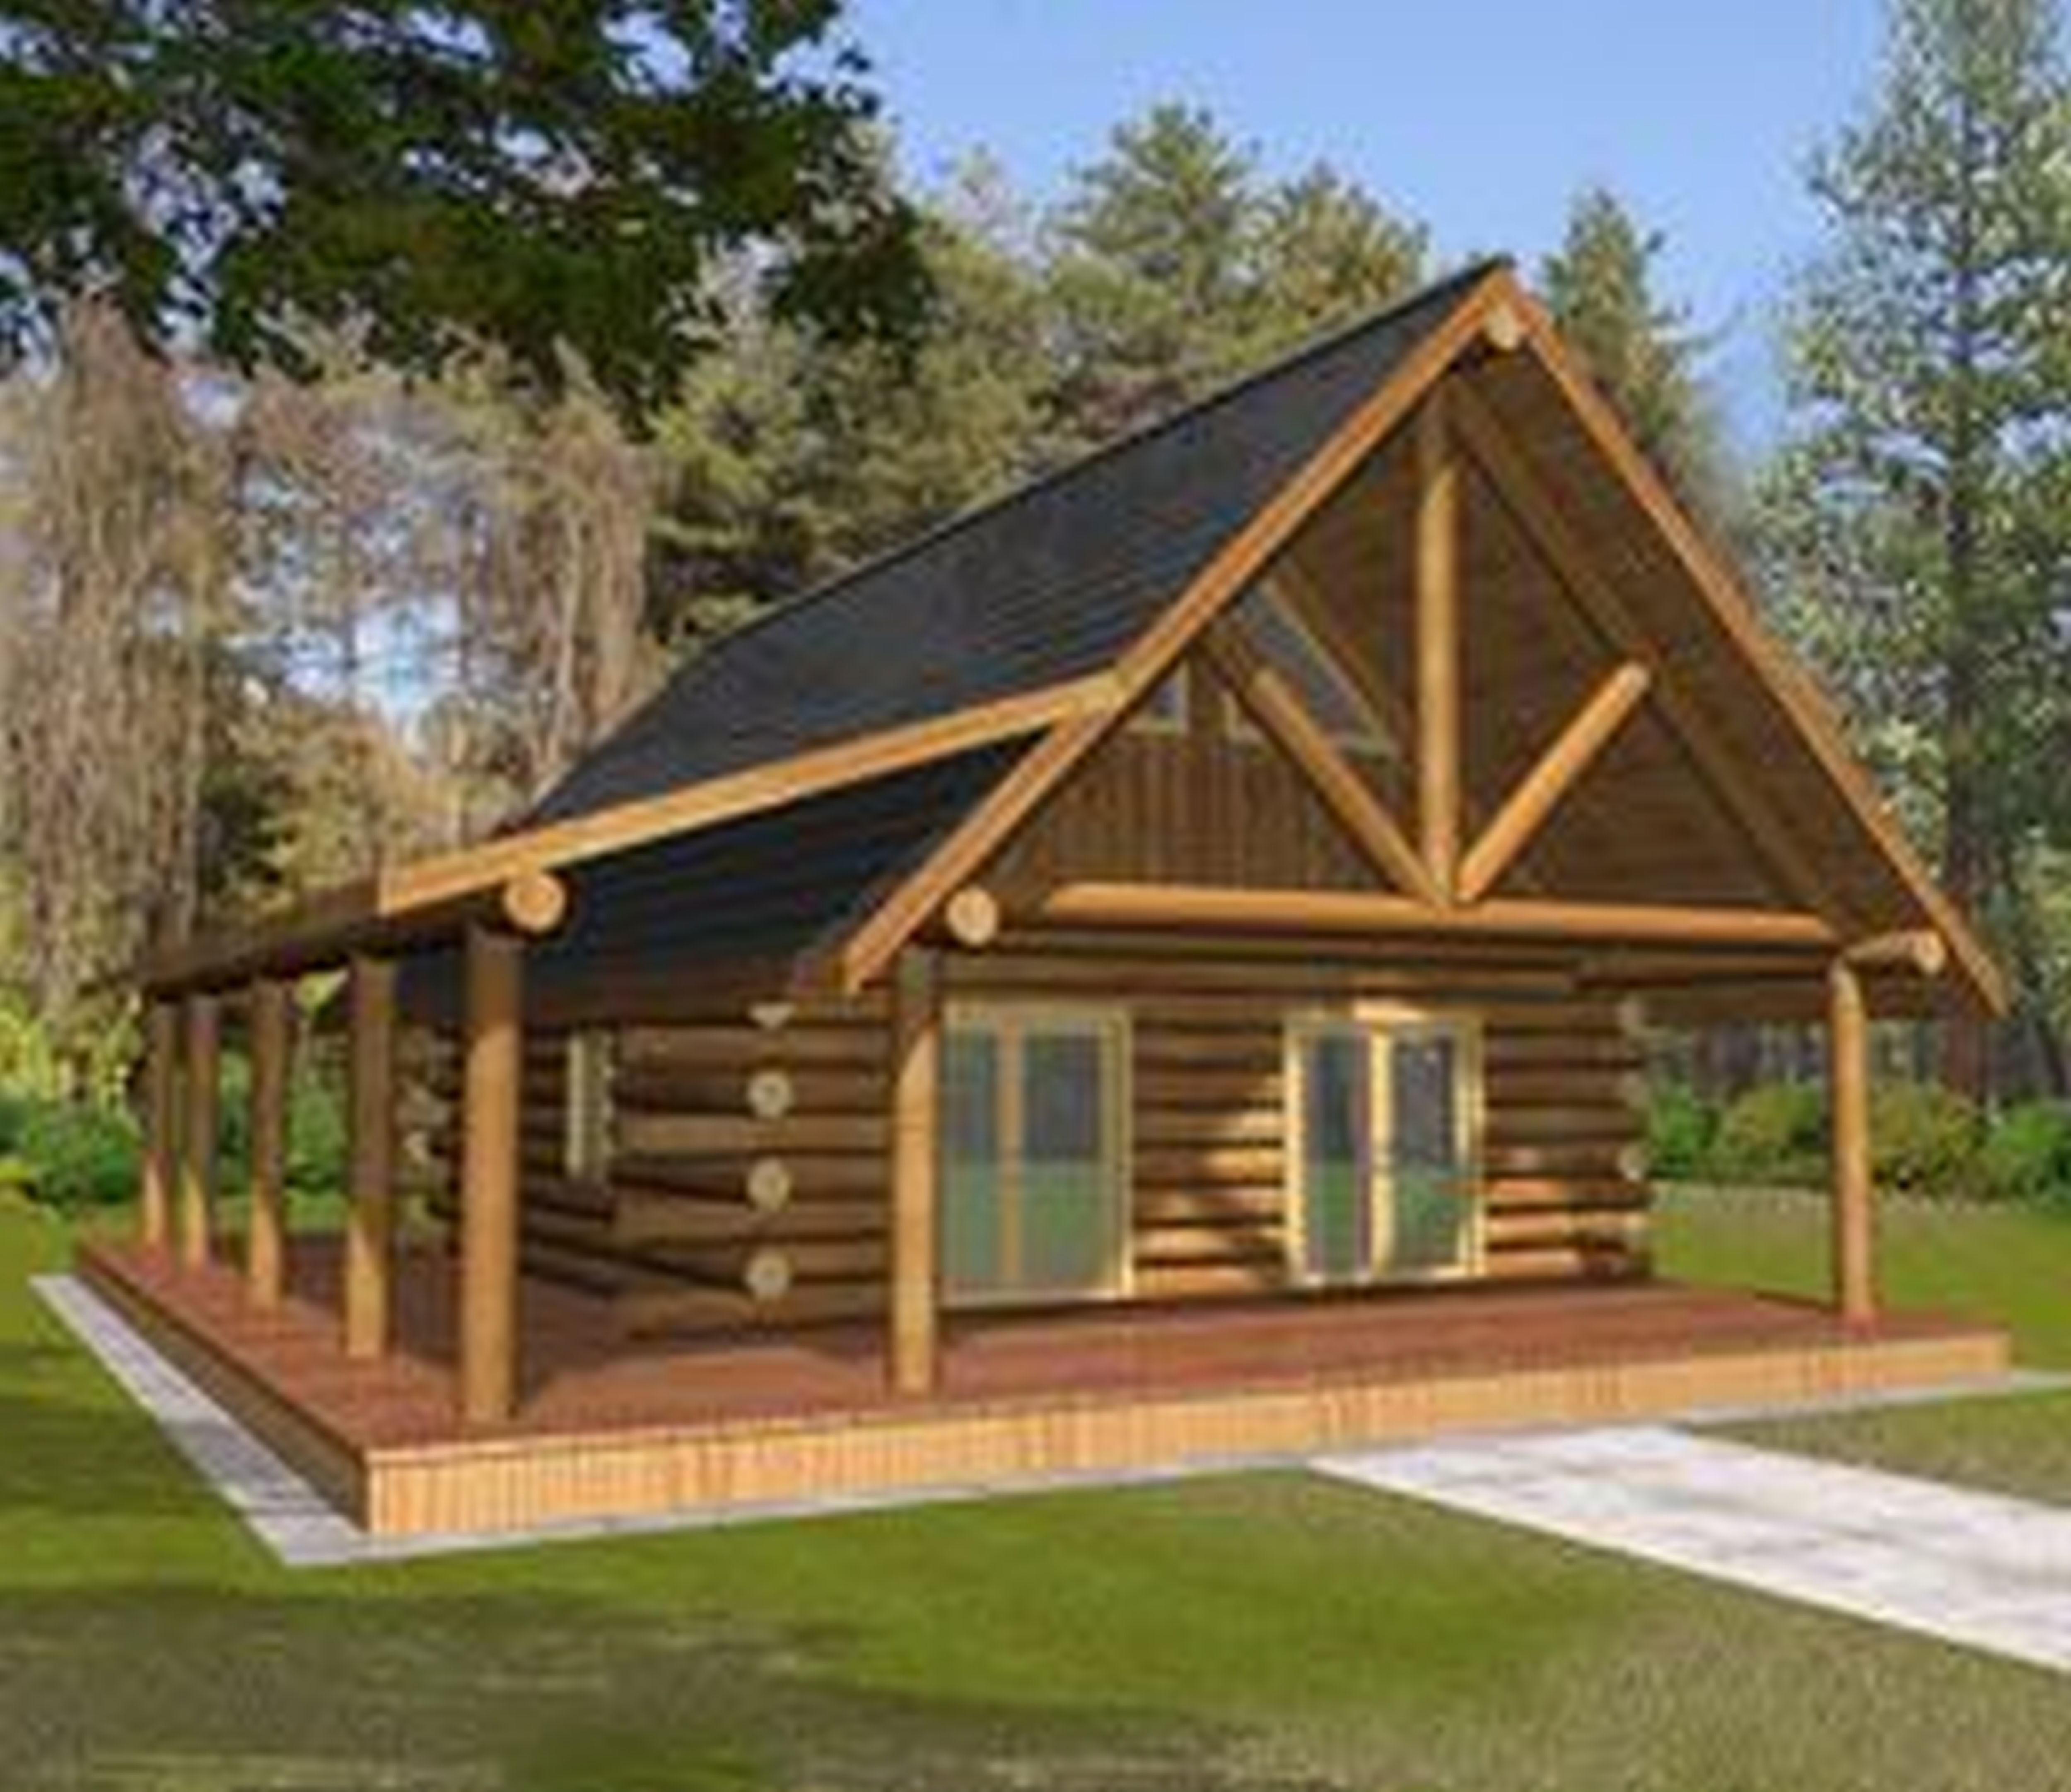 wooden country house plans photo - 2